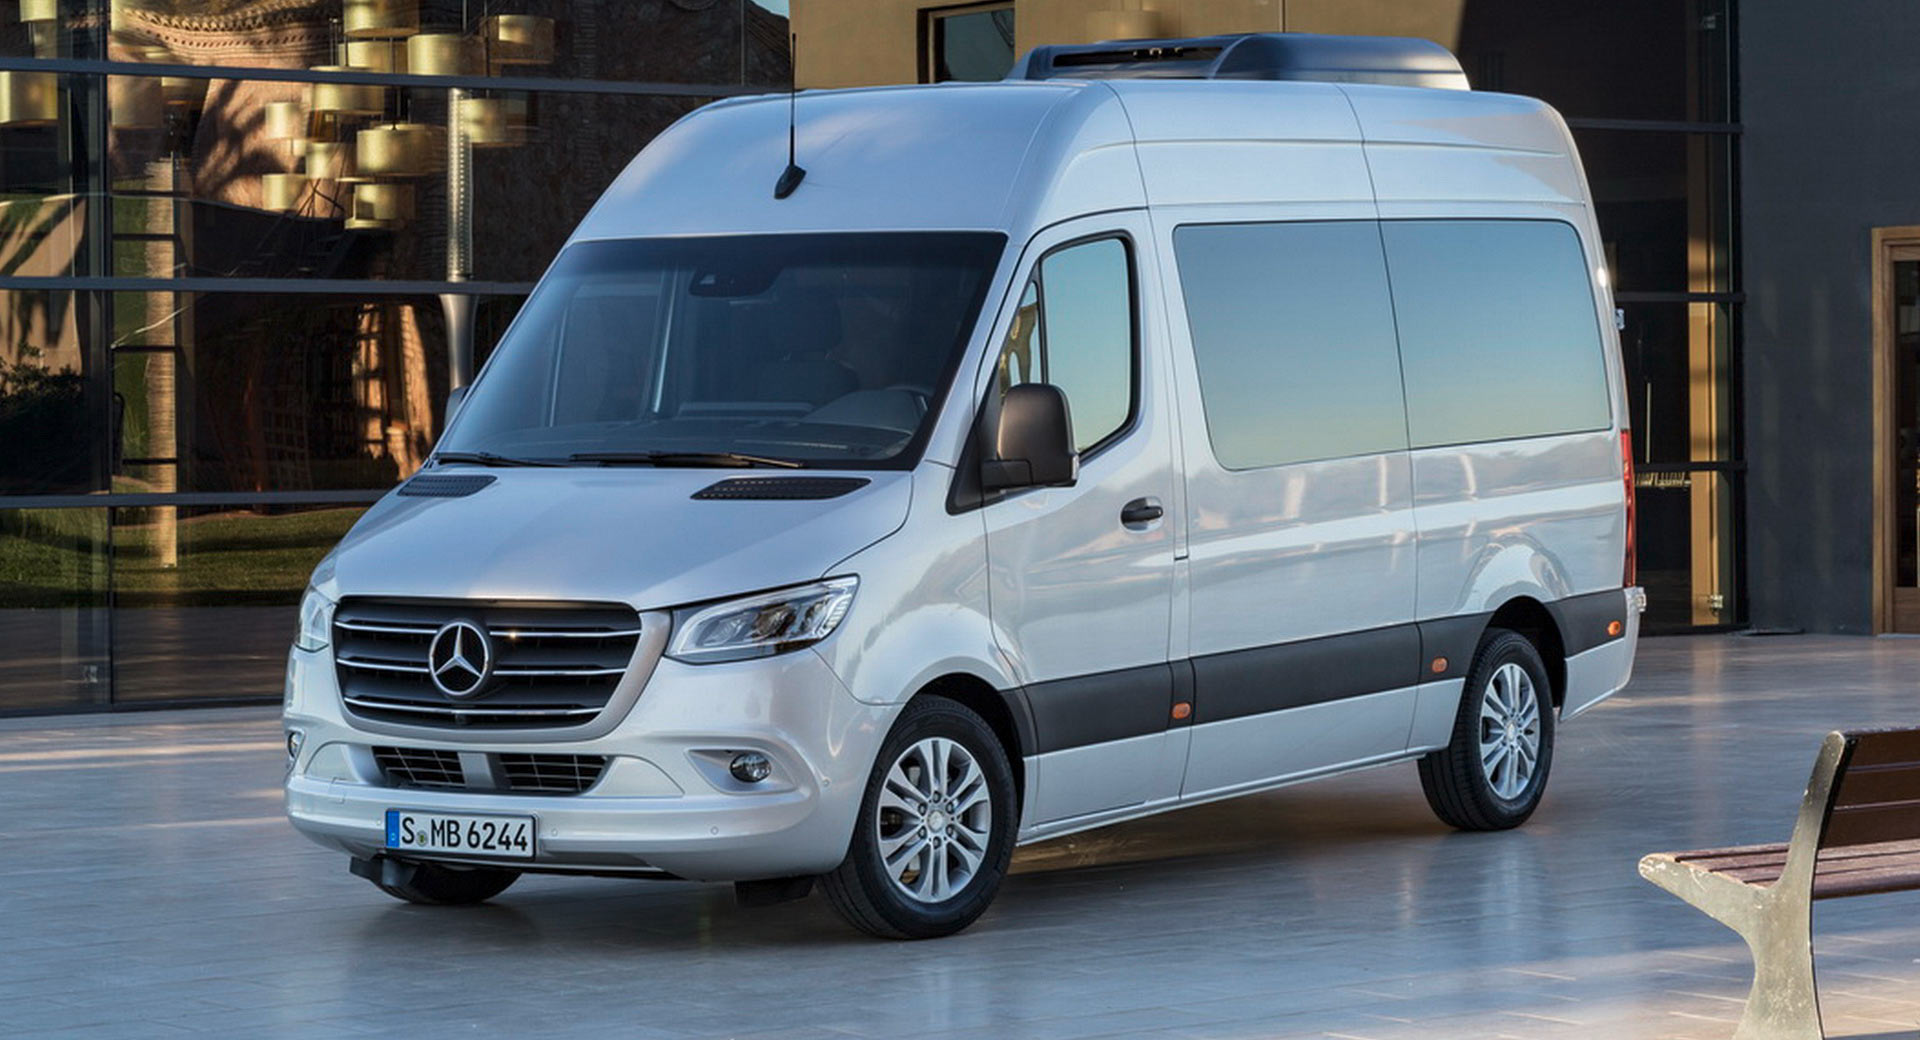 2018 Mercedes Sprinter Here S Your All New Fully Connected Premium Van Carscoops